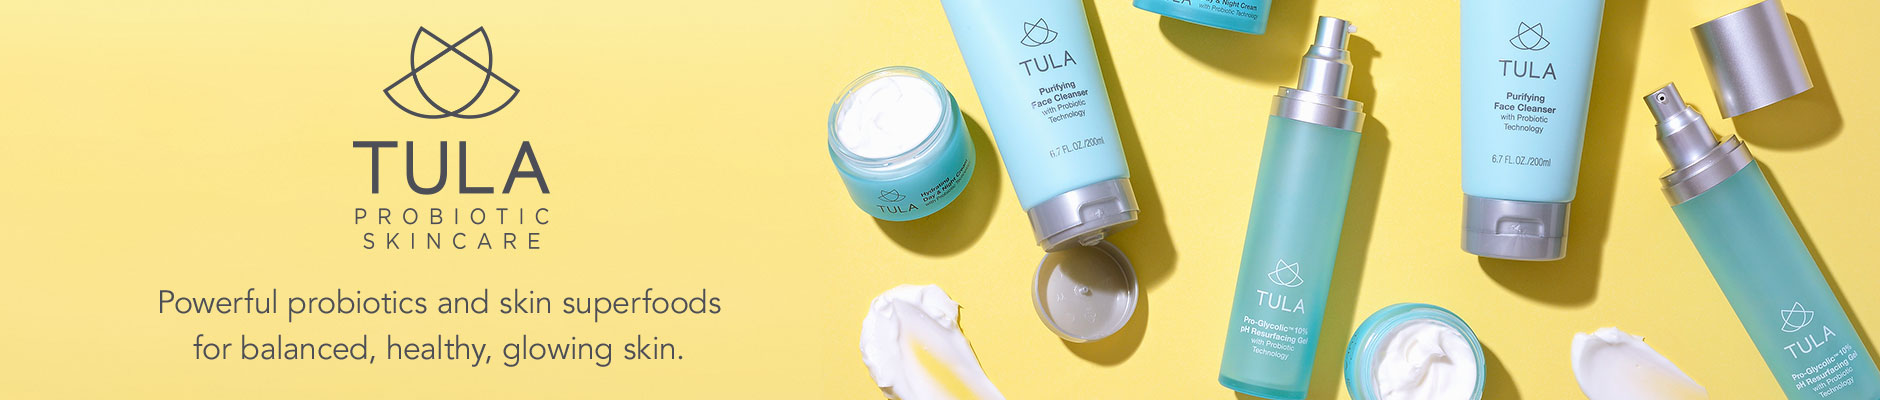 Tula: Probiotic Skincare - Powerful probiotics and skin superfoods for balanced, healthy, glowing skin.